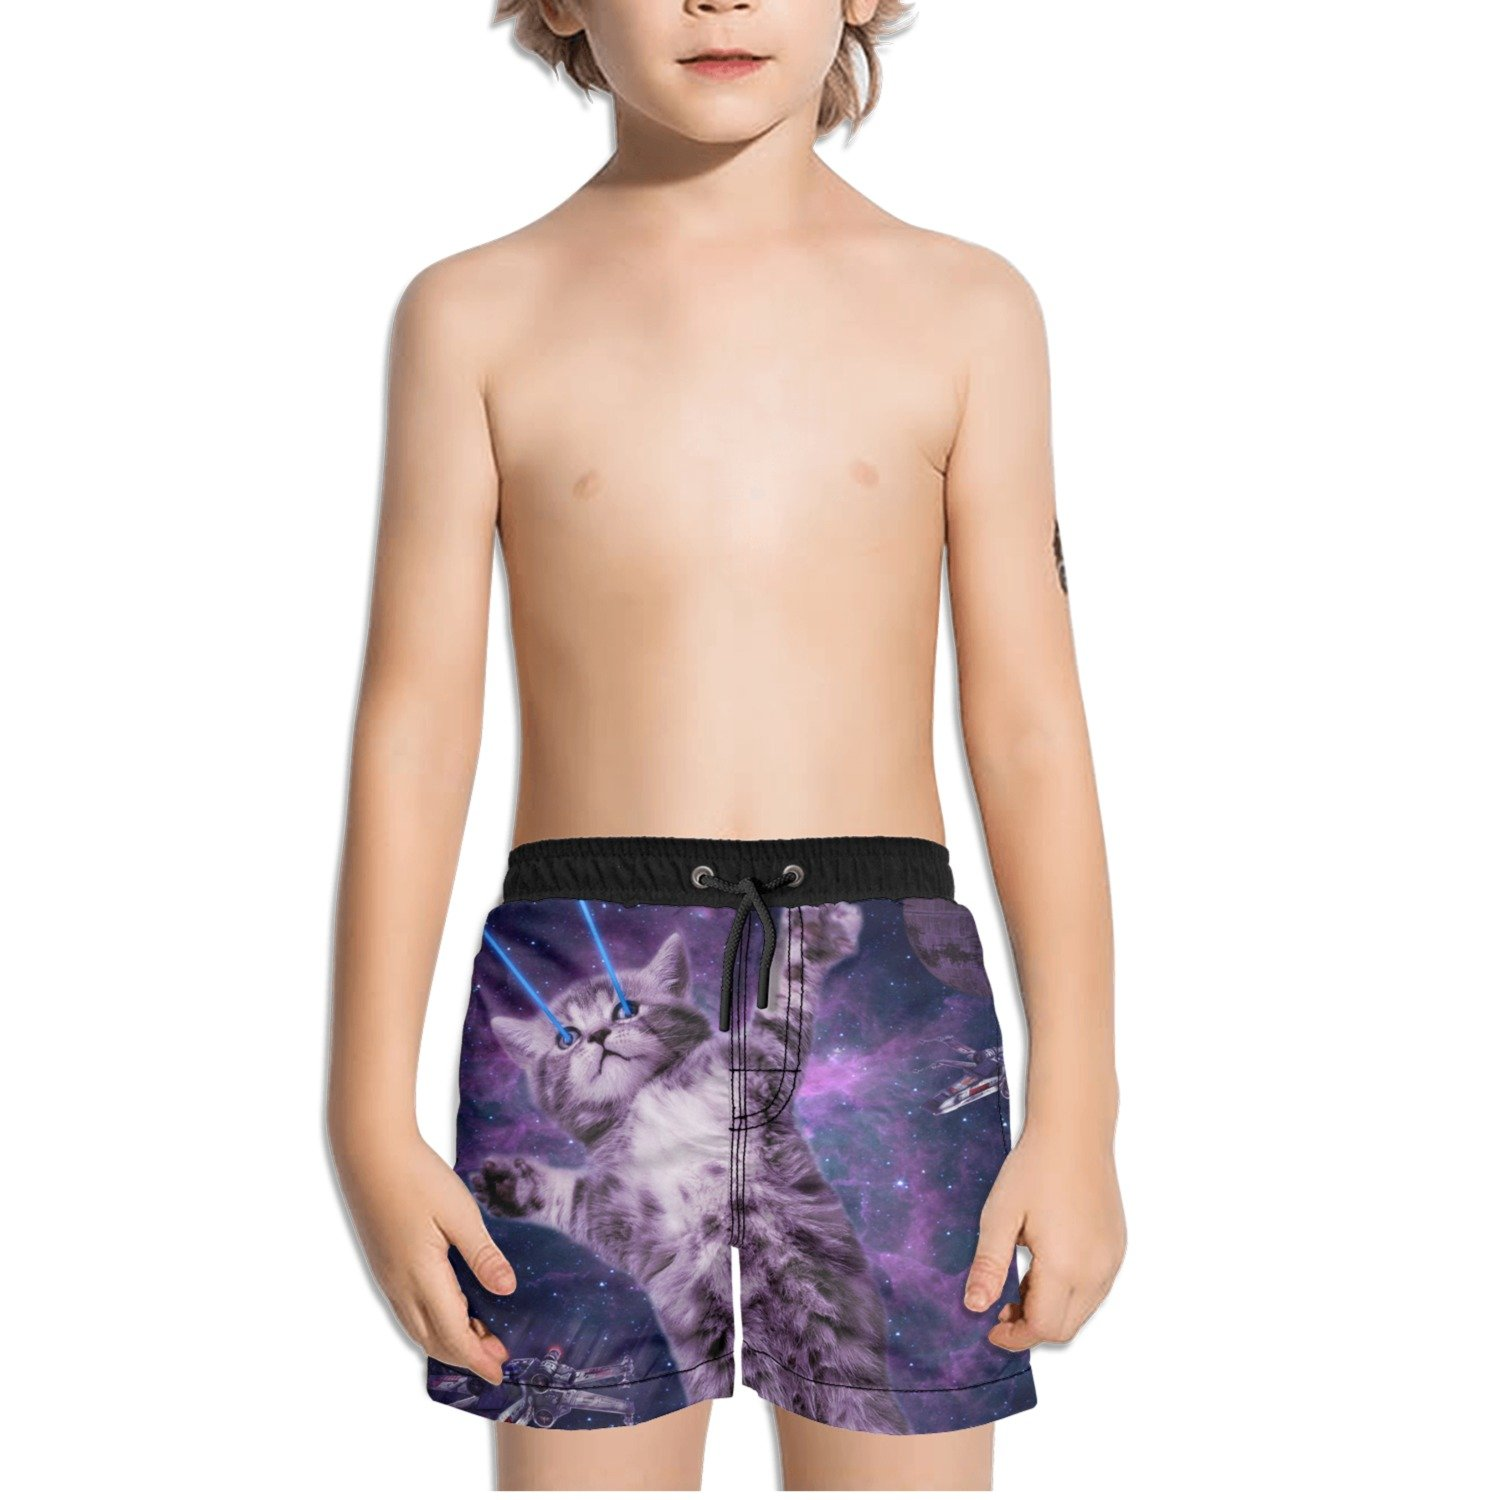 FullBo Explore Galaxy Cat Little Boys Short Swim Trunks Quick Dry Beach Shorts